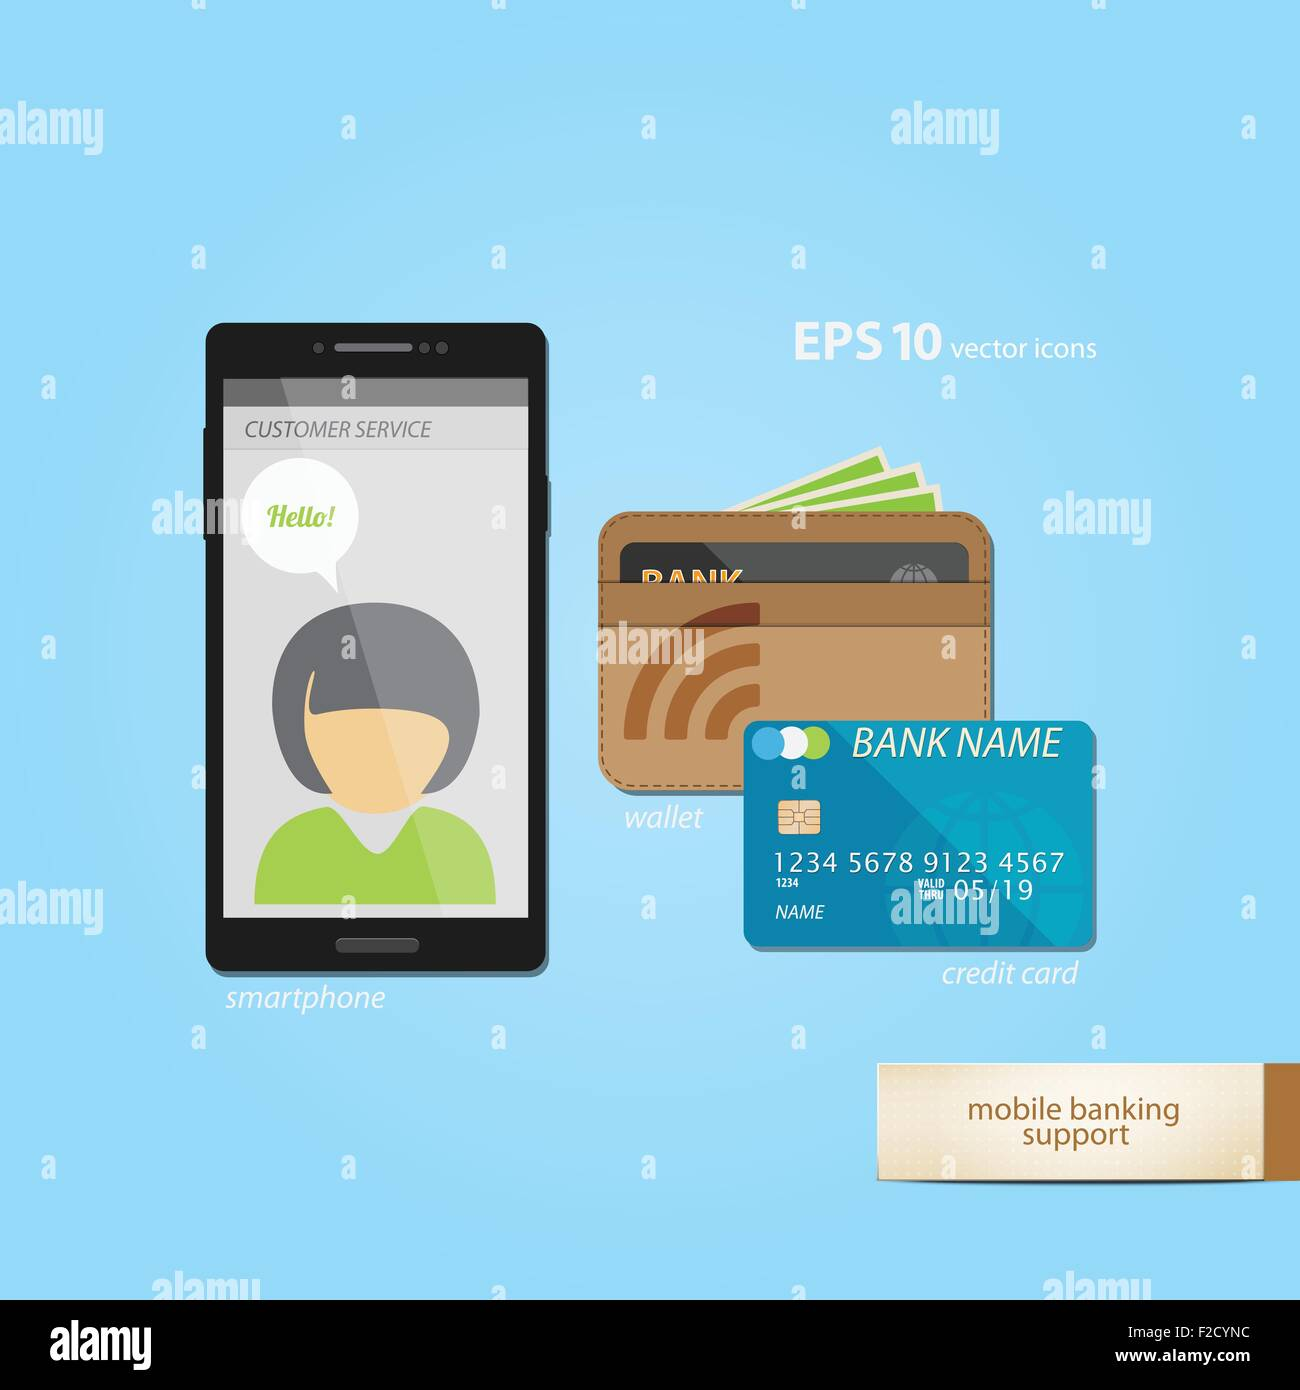 mobile banking and e-commerce concept with credit cards